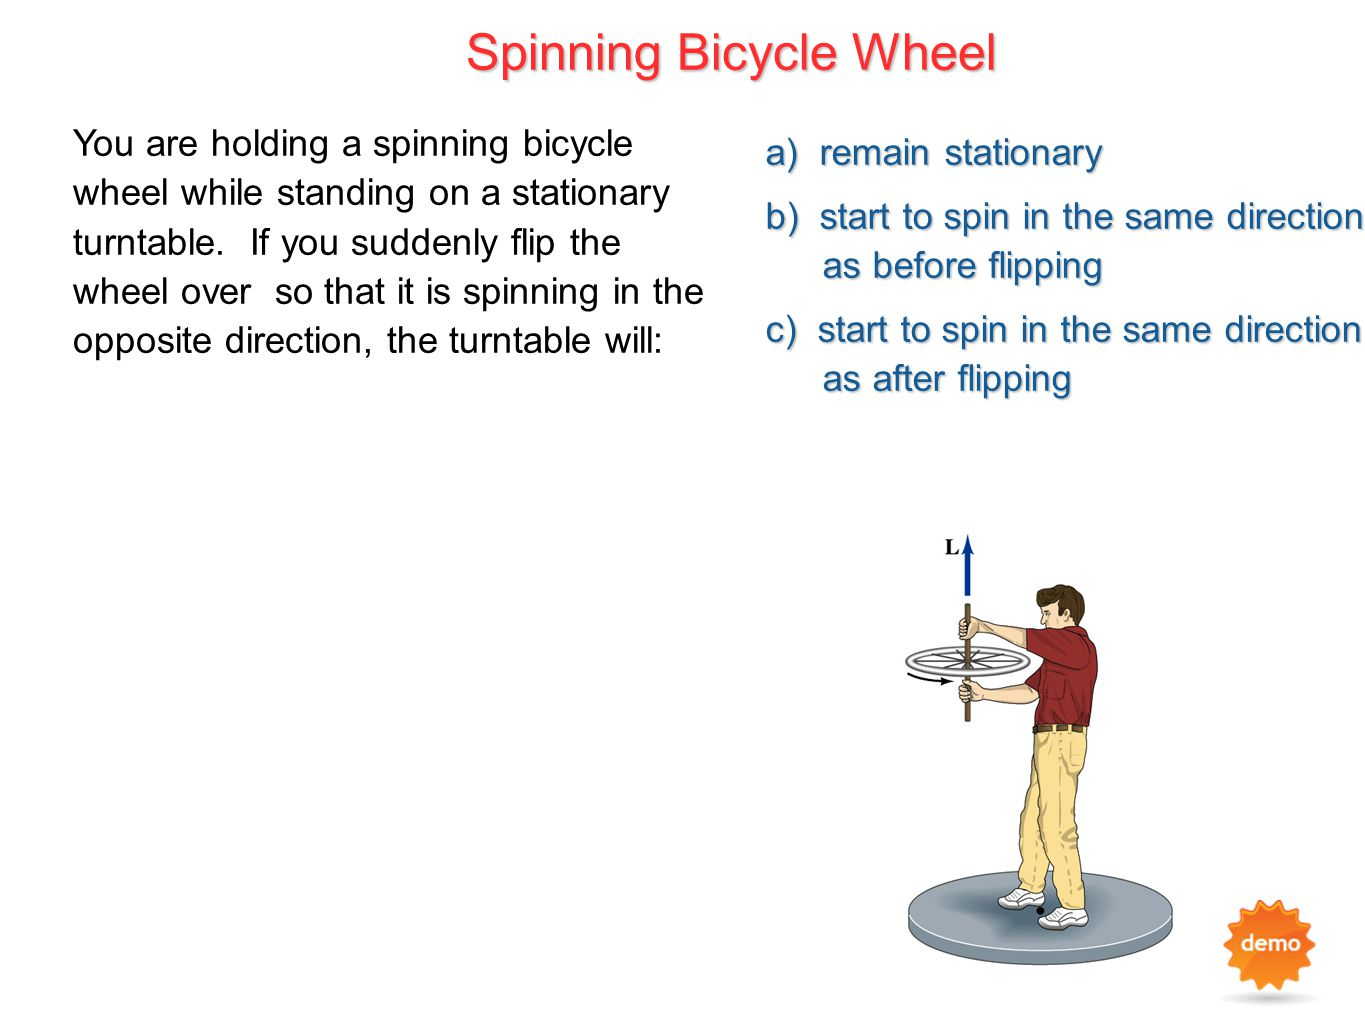 a) remain stationary b) start to spin in the same direction as before flipping c) start to spin in the same direction as after flipping You are holdin